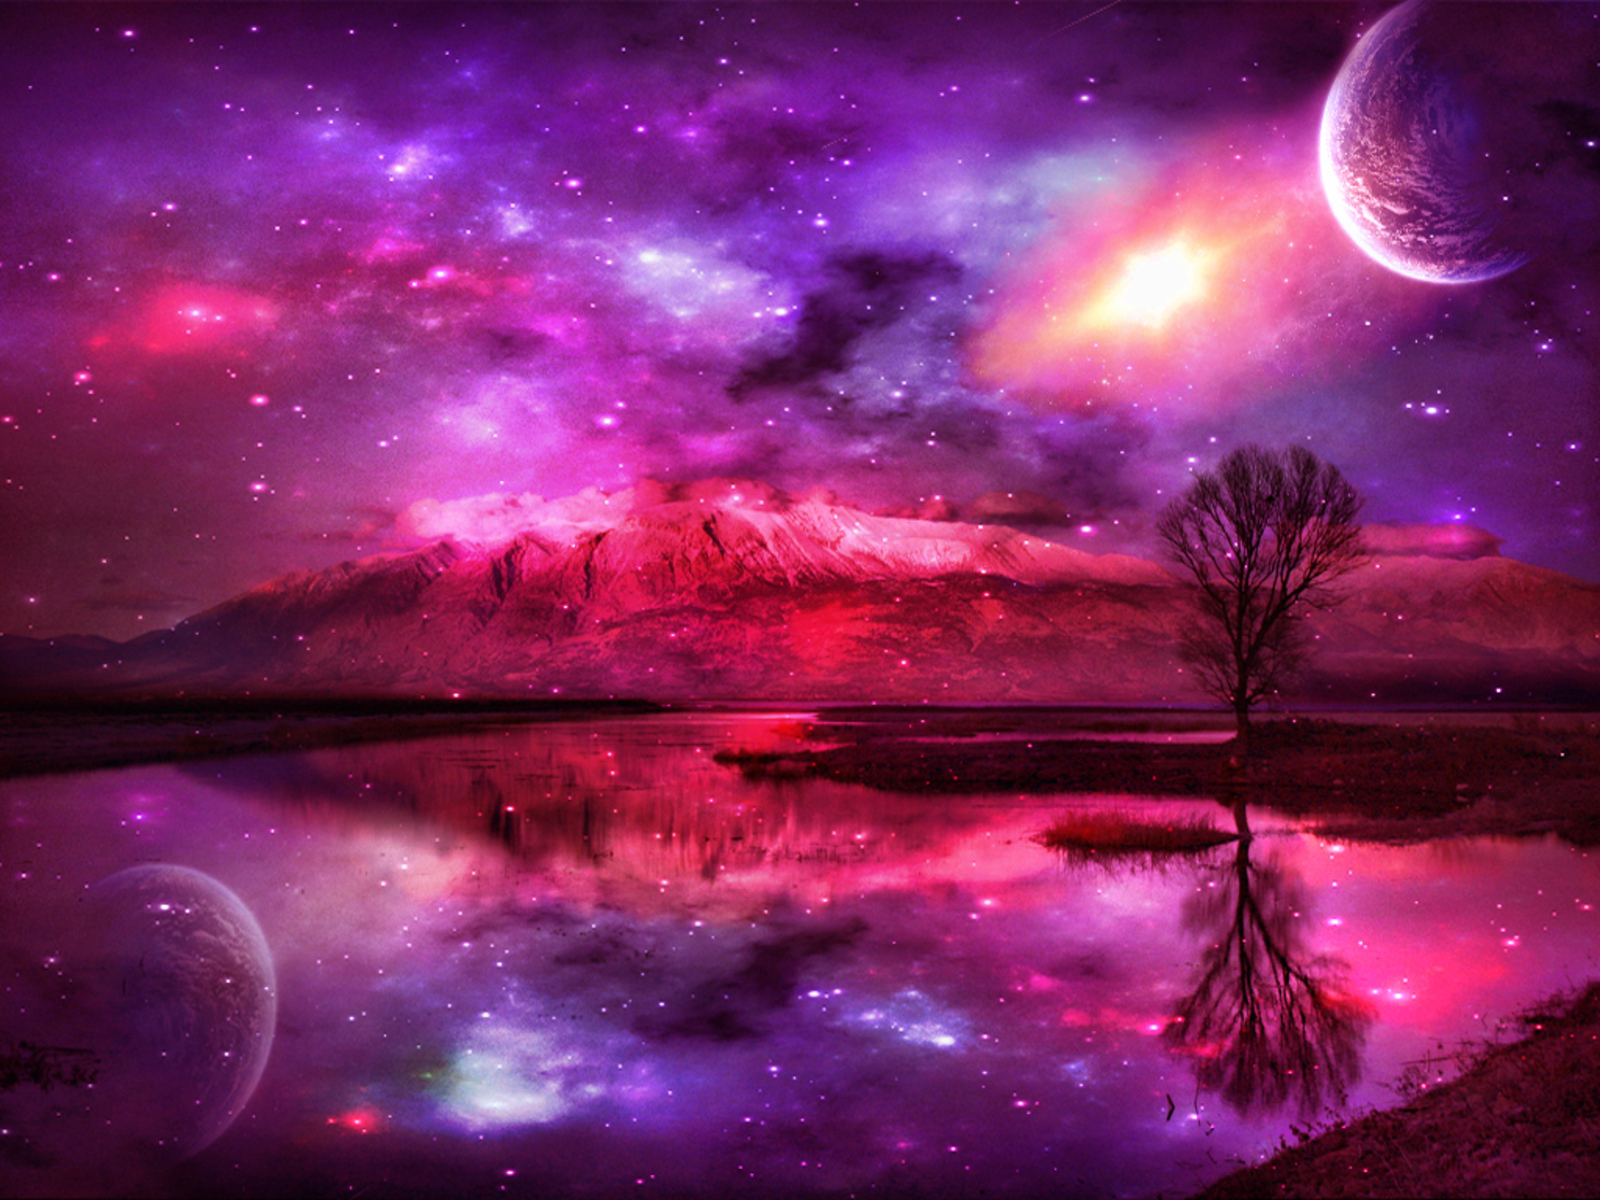 Pink fantasy wallpaper high definition high quality for Space landscape